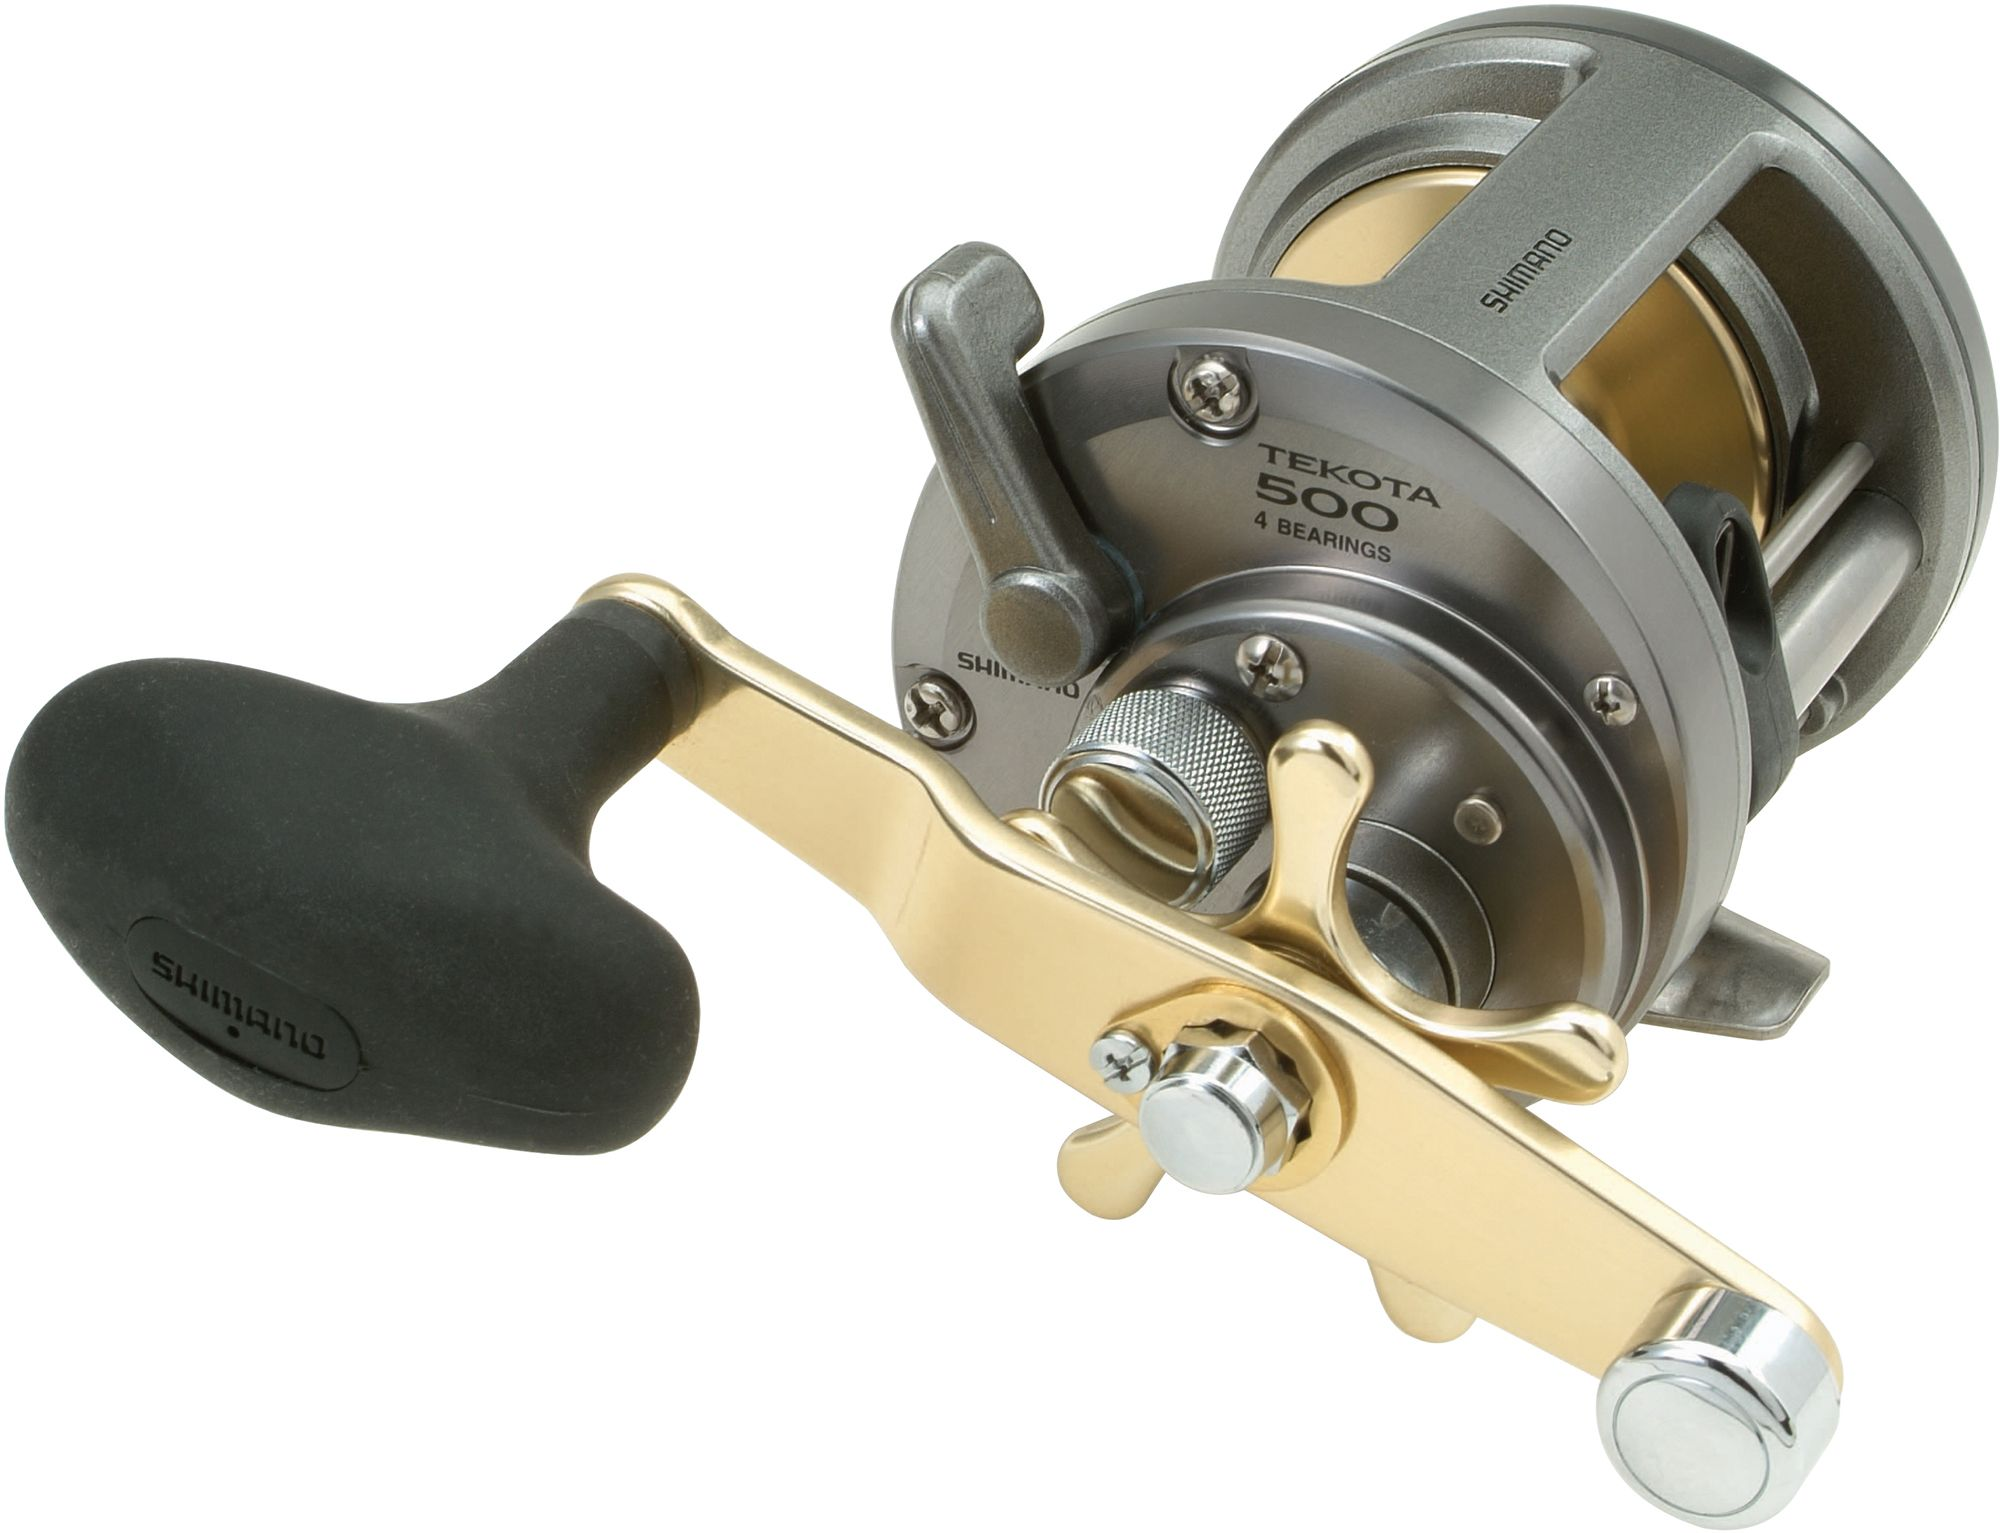 How to spool a conventional reel - Noimagefound